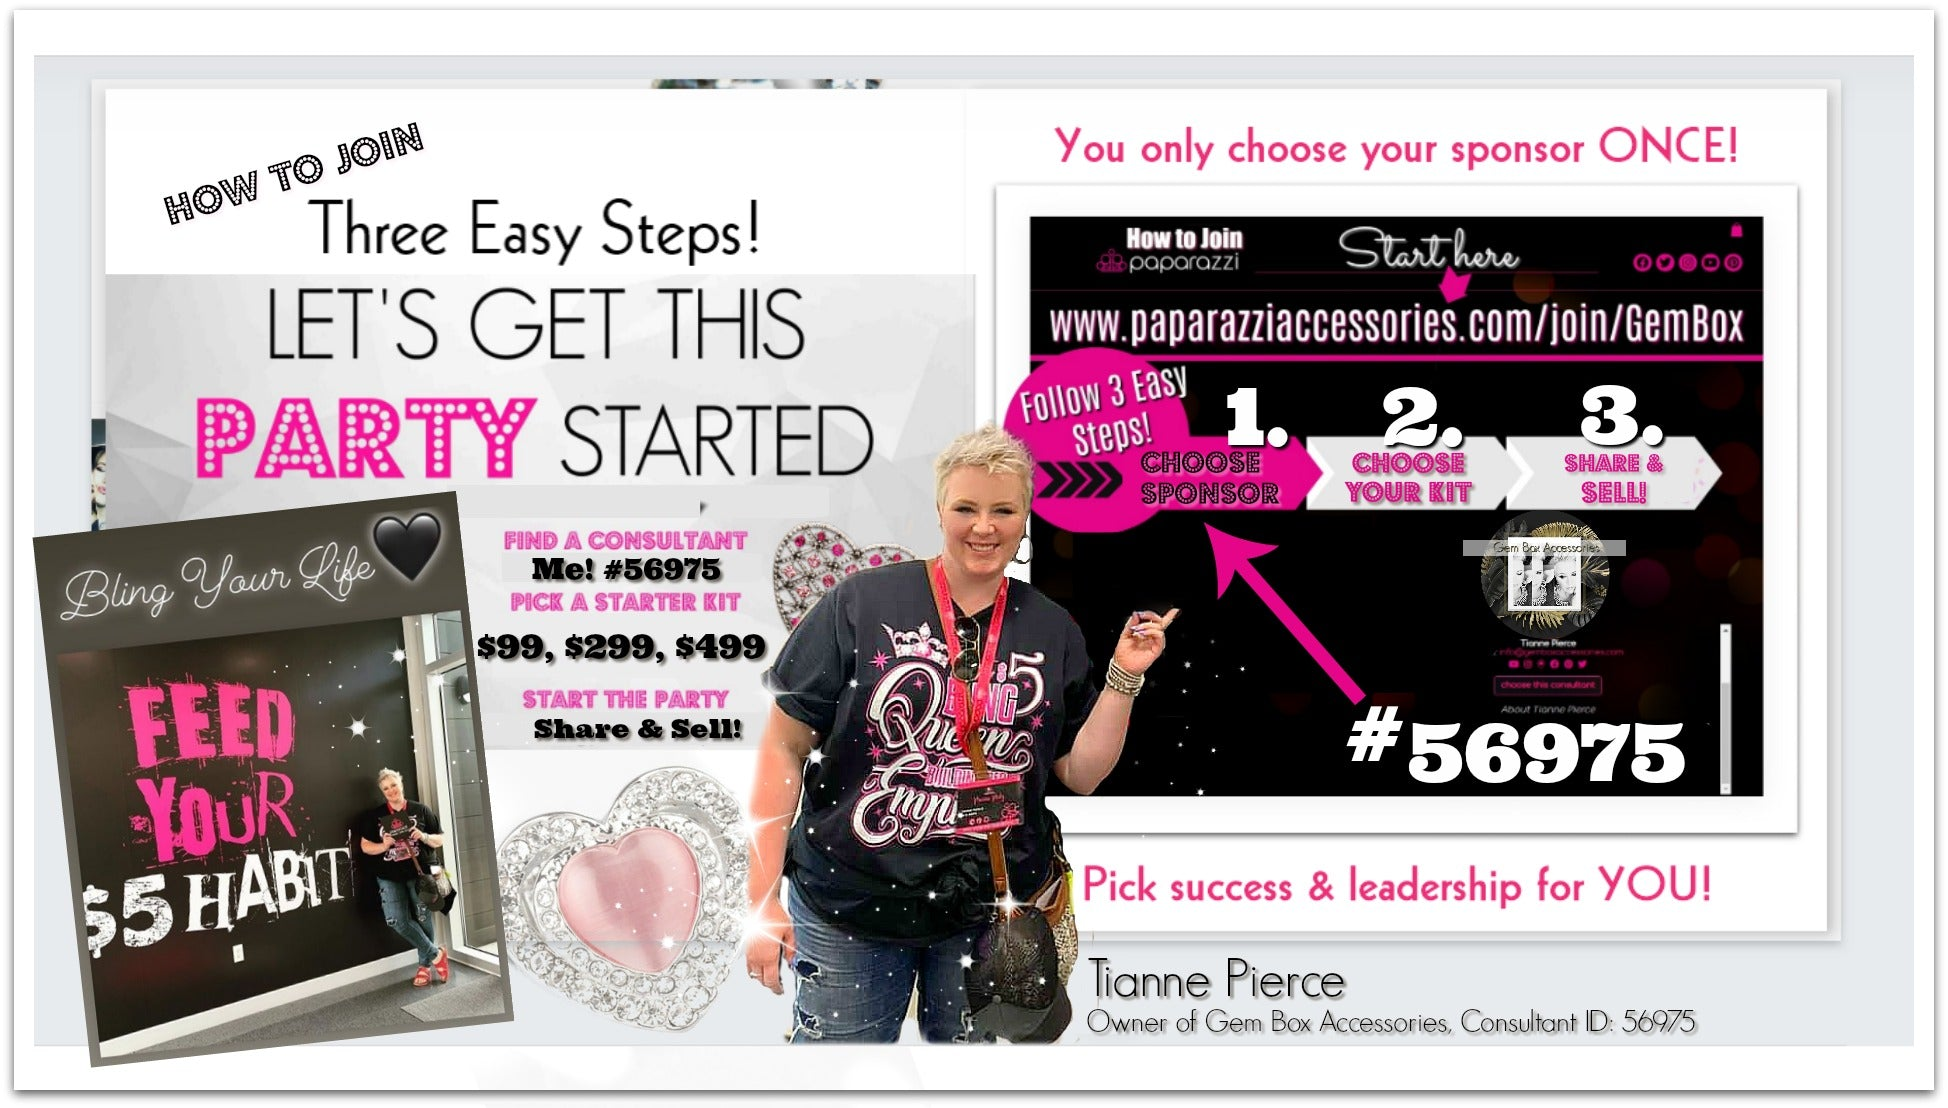 Paparazzi Jewelry | Which Paparazzi Starter Kit Is Best To Join | Gem Box Accessories